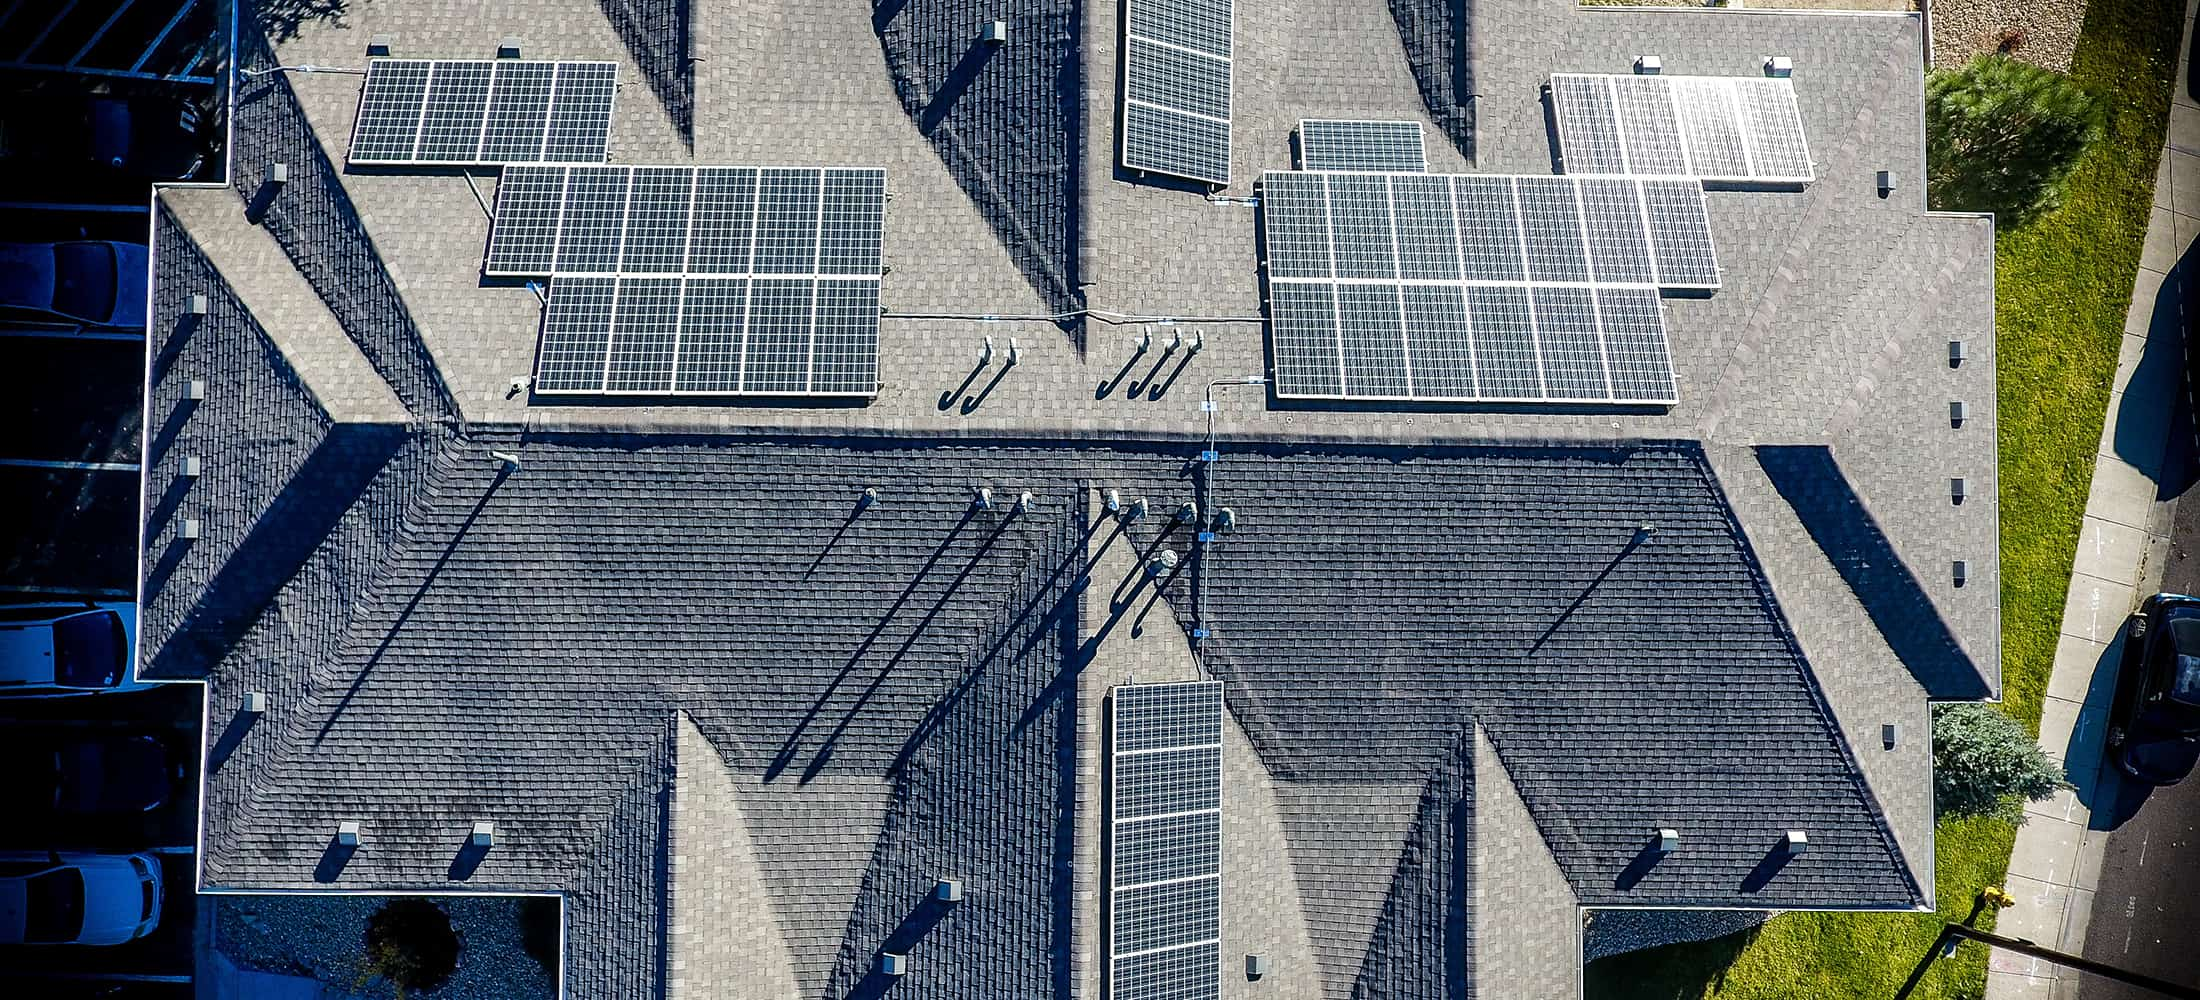 house roof full of solar panels seen from above